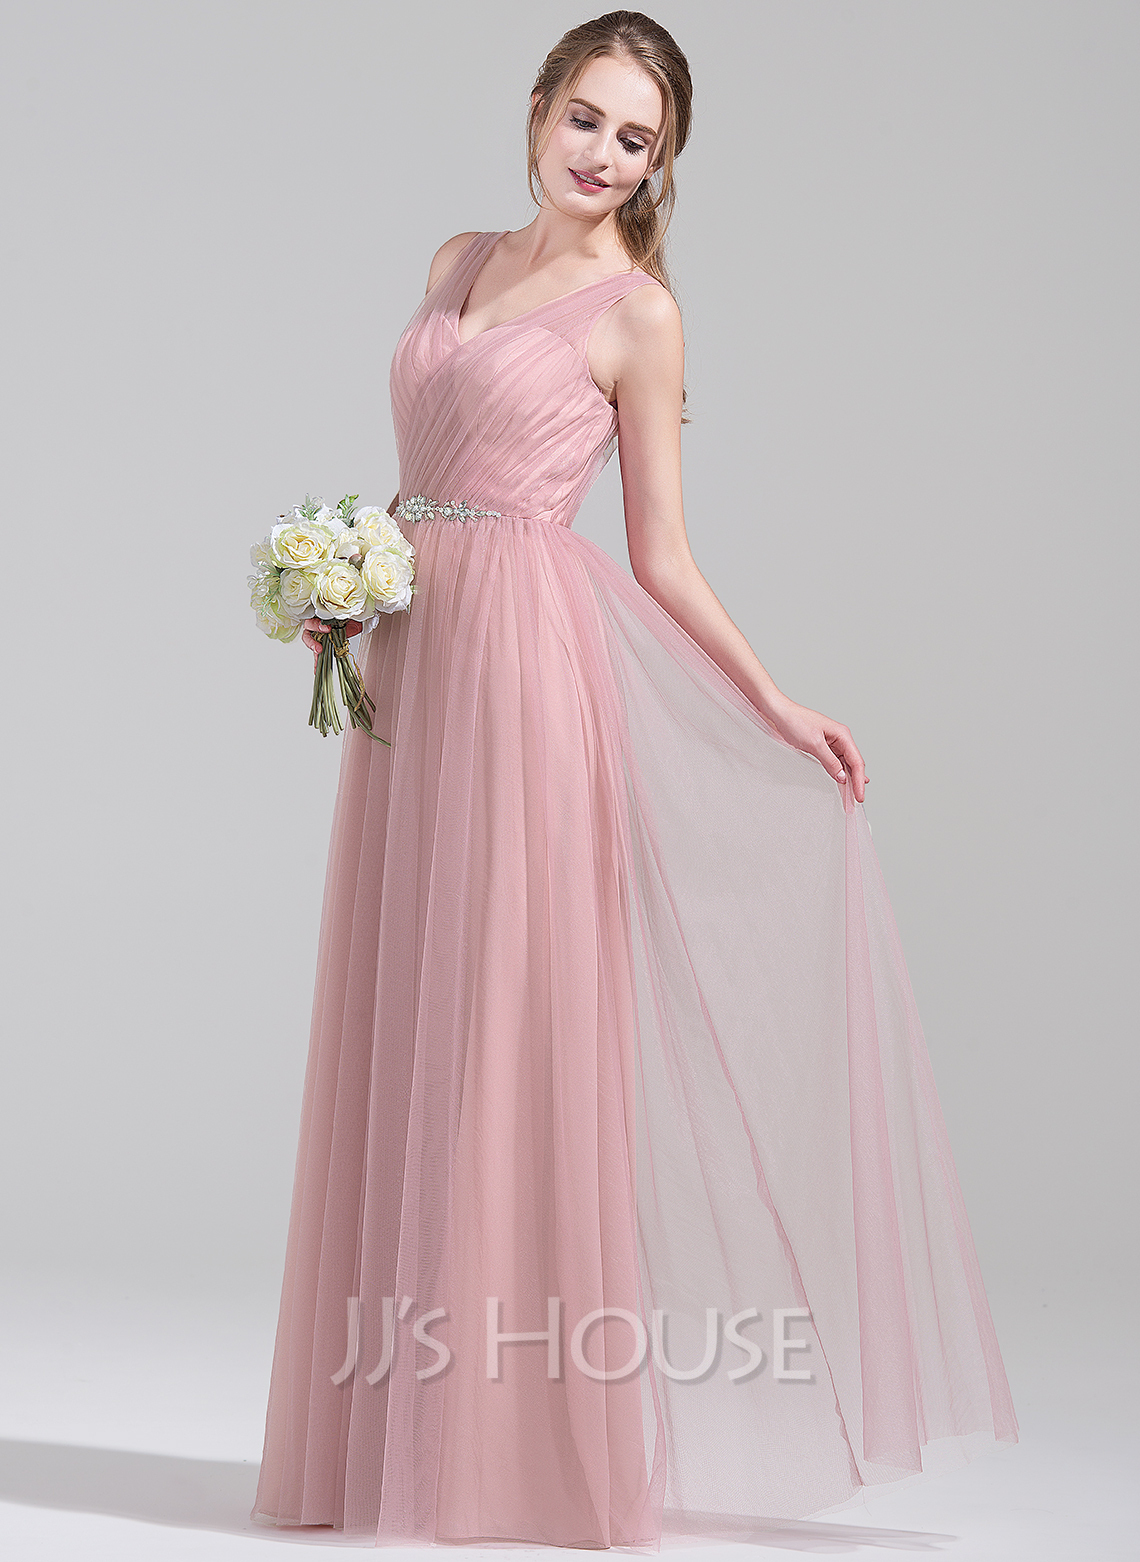 A-Line/Princess V-neck Floor-Length Tulle Bridesmaid Dress With Ruffle Beading Sequins